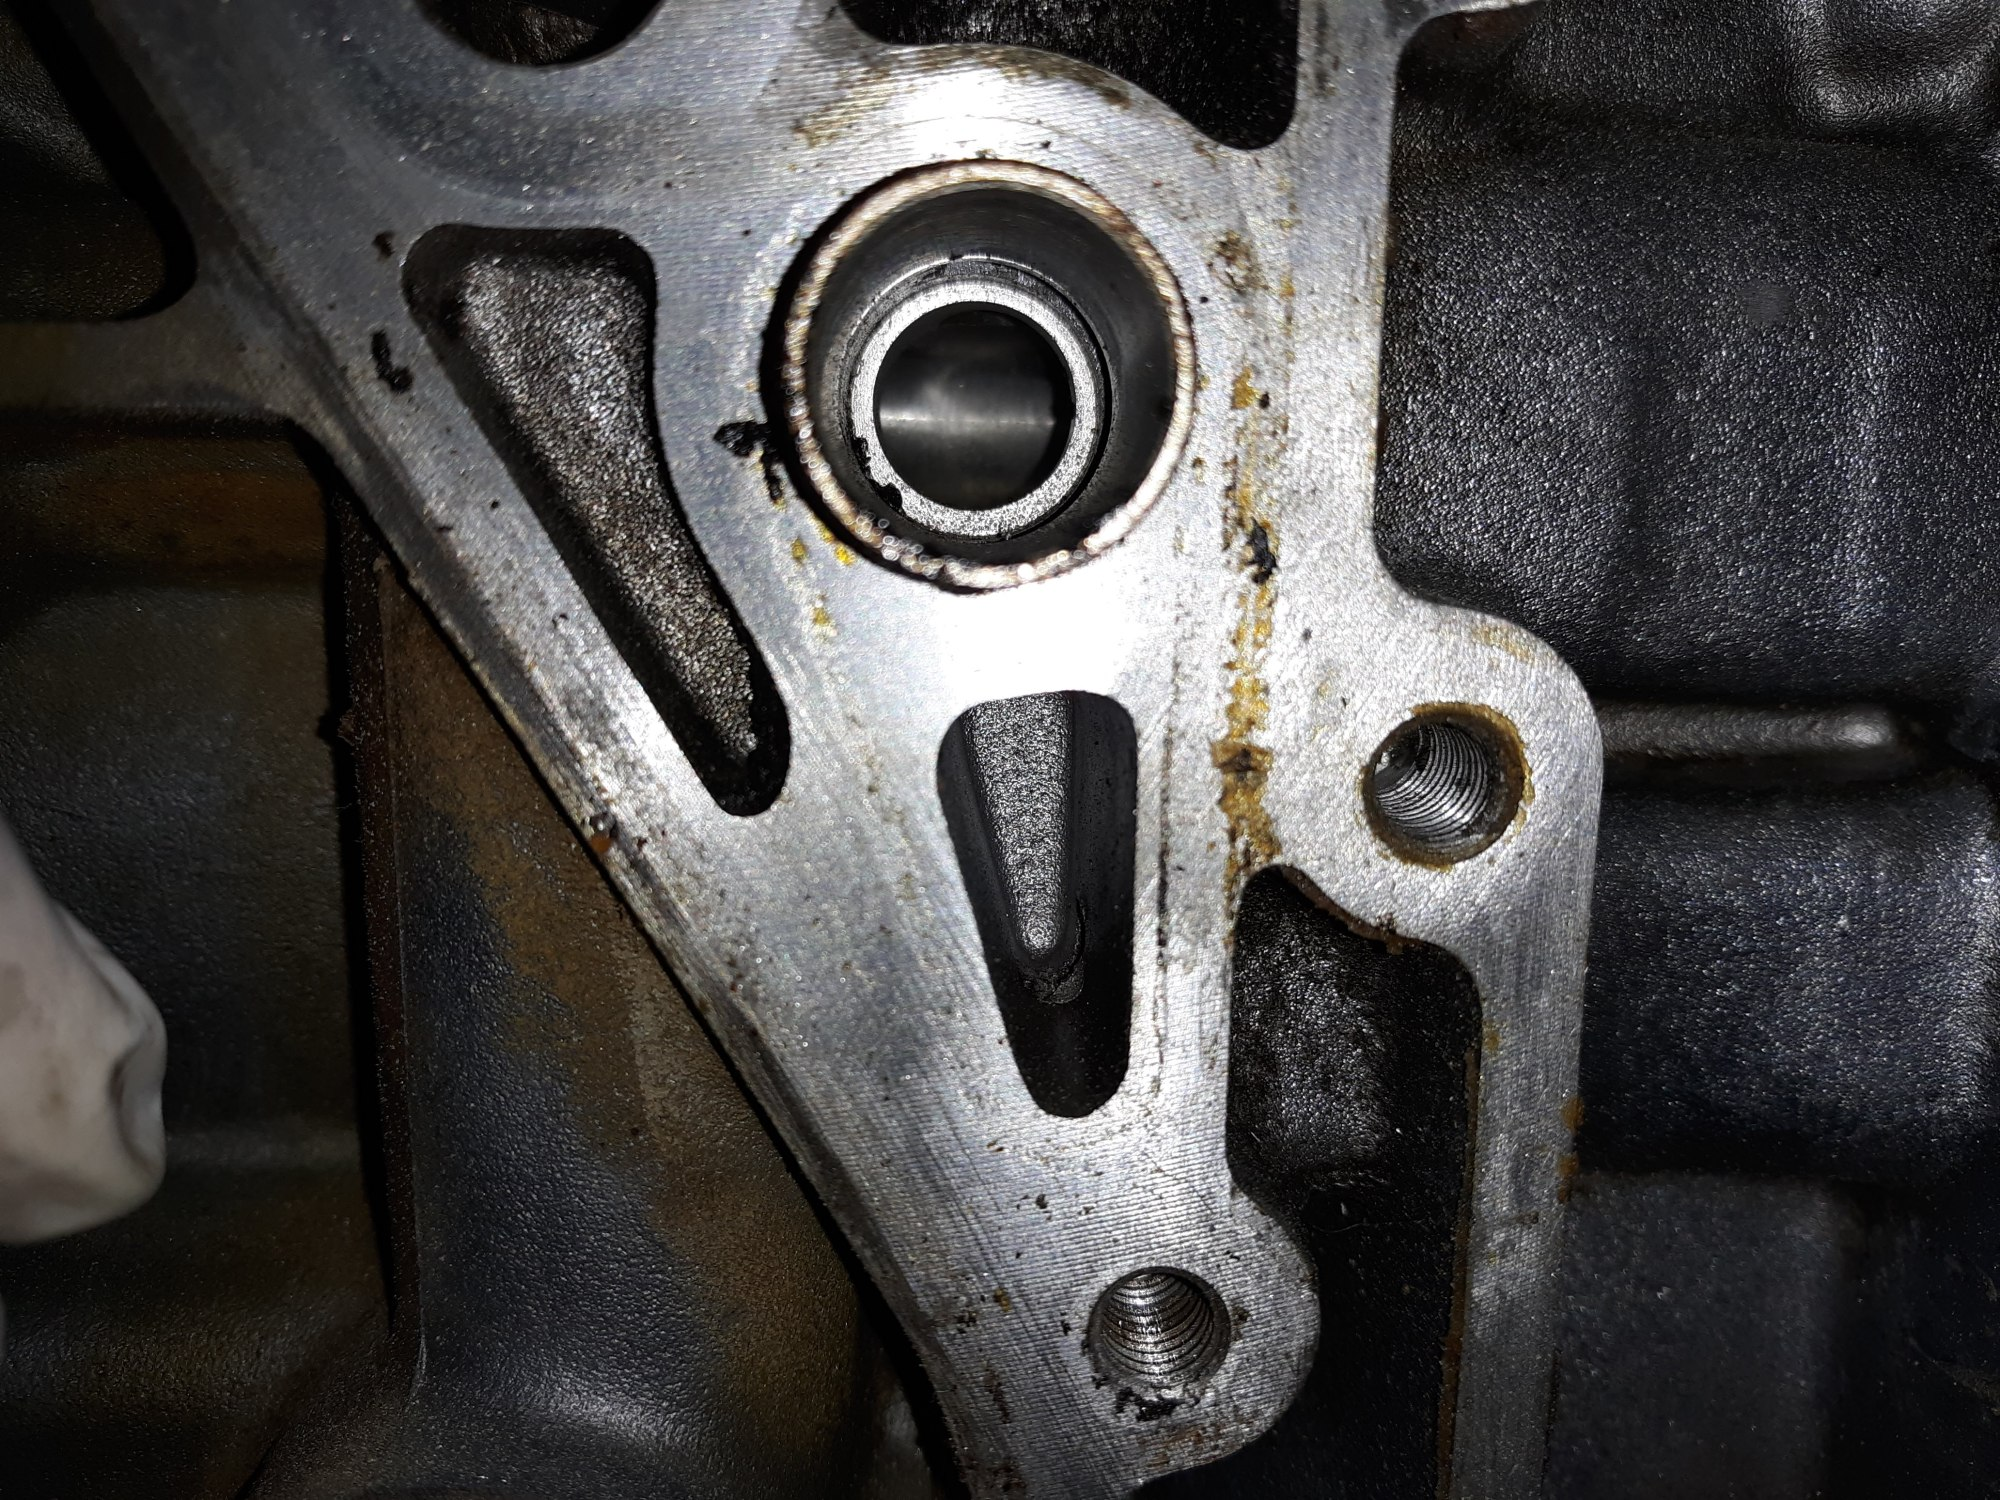 hight resolution of the oprv resides just downstream of the oil filter it s end is exposed to a vertical oil passage in the side of the block here is a picture but it is hard